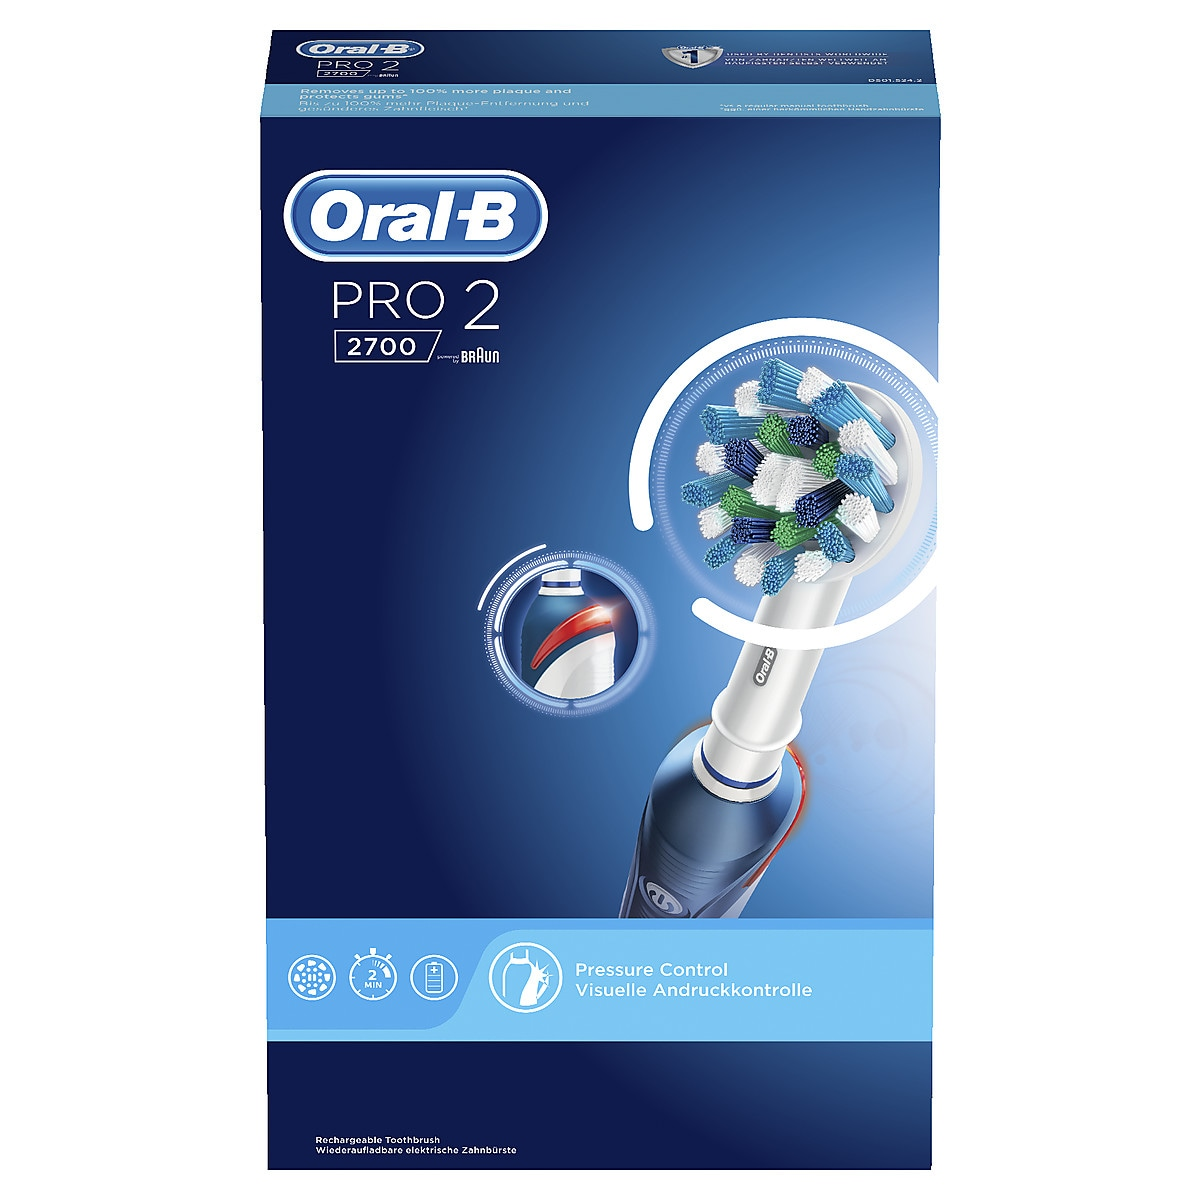 Oral-B PRO 2700 Cross Action Electric Toothbrush